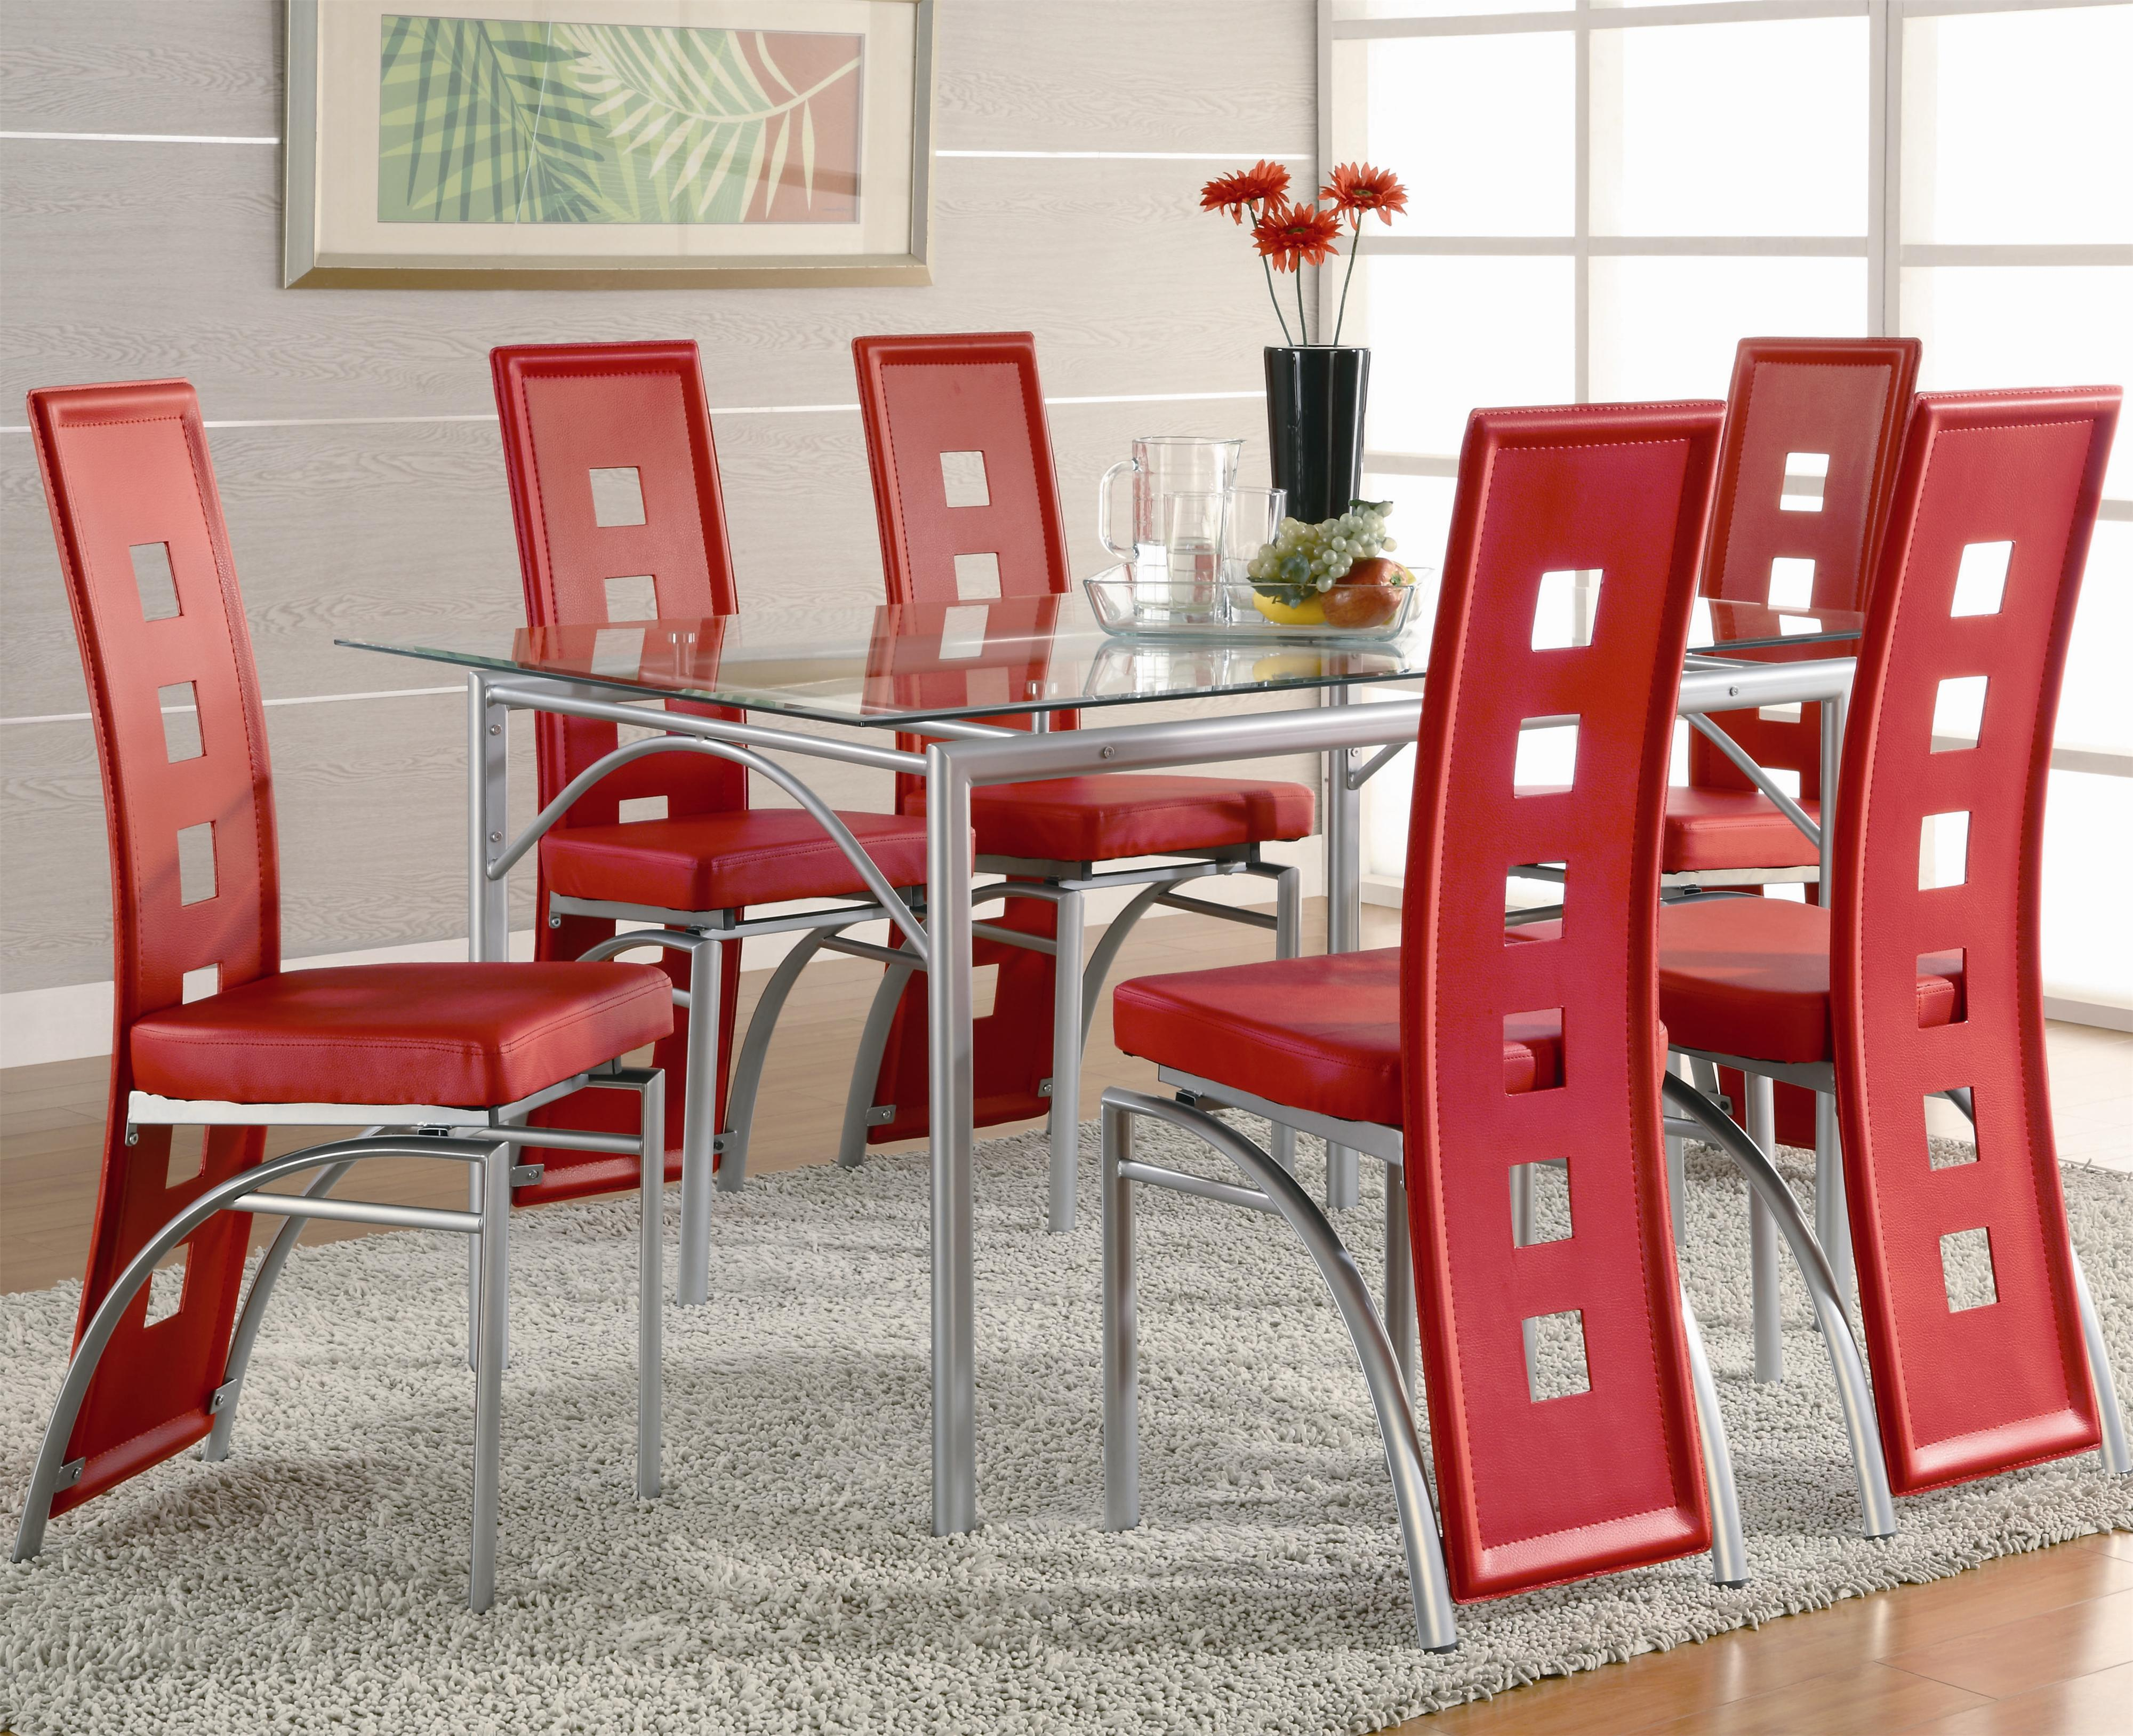 Coaster Los Feliz Dining Table and Chair (Red) Set - Item Number 101681 & Coaster Los Feliz Dining Table and Chair (Red) Set | Northeast ...